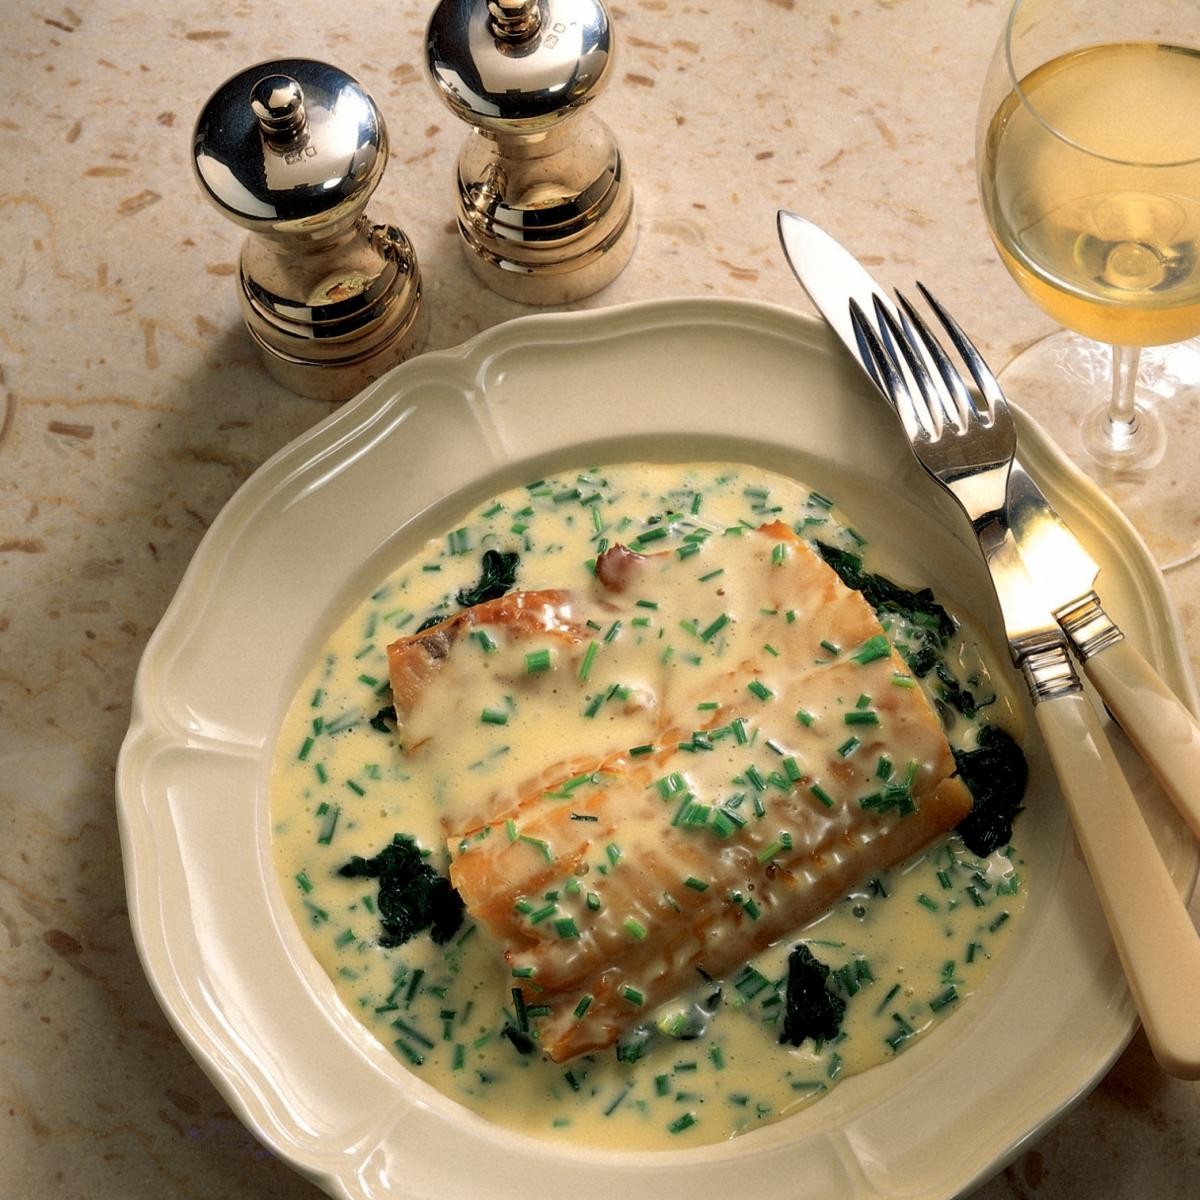 Cheddar Crusted Smoked Haddock With Jersey Royals And